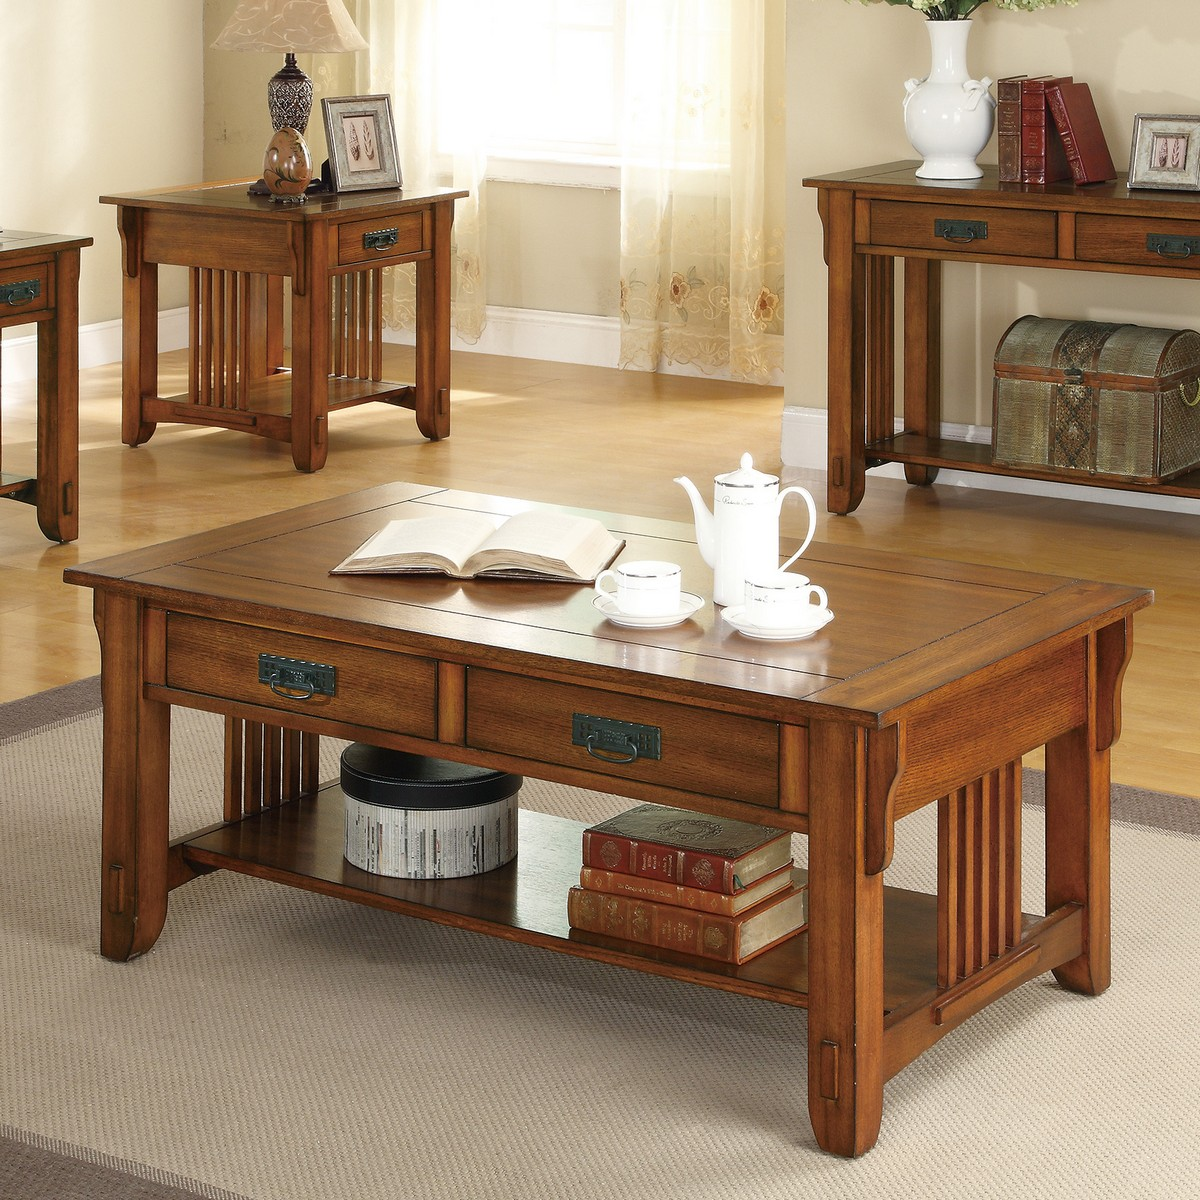 Coaster 702008 Coffee/Cocktail Table - Warm Brown